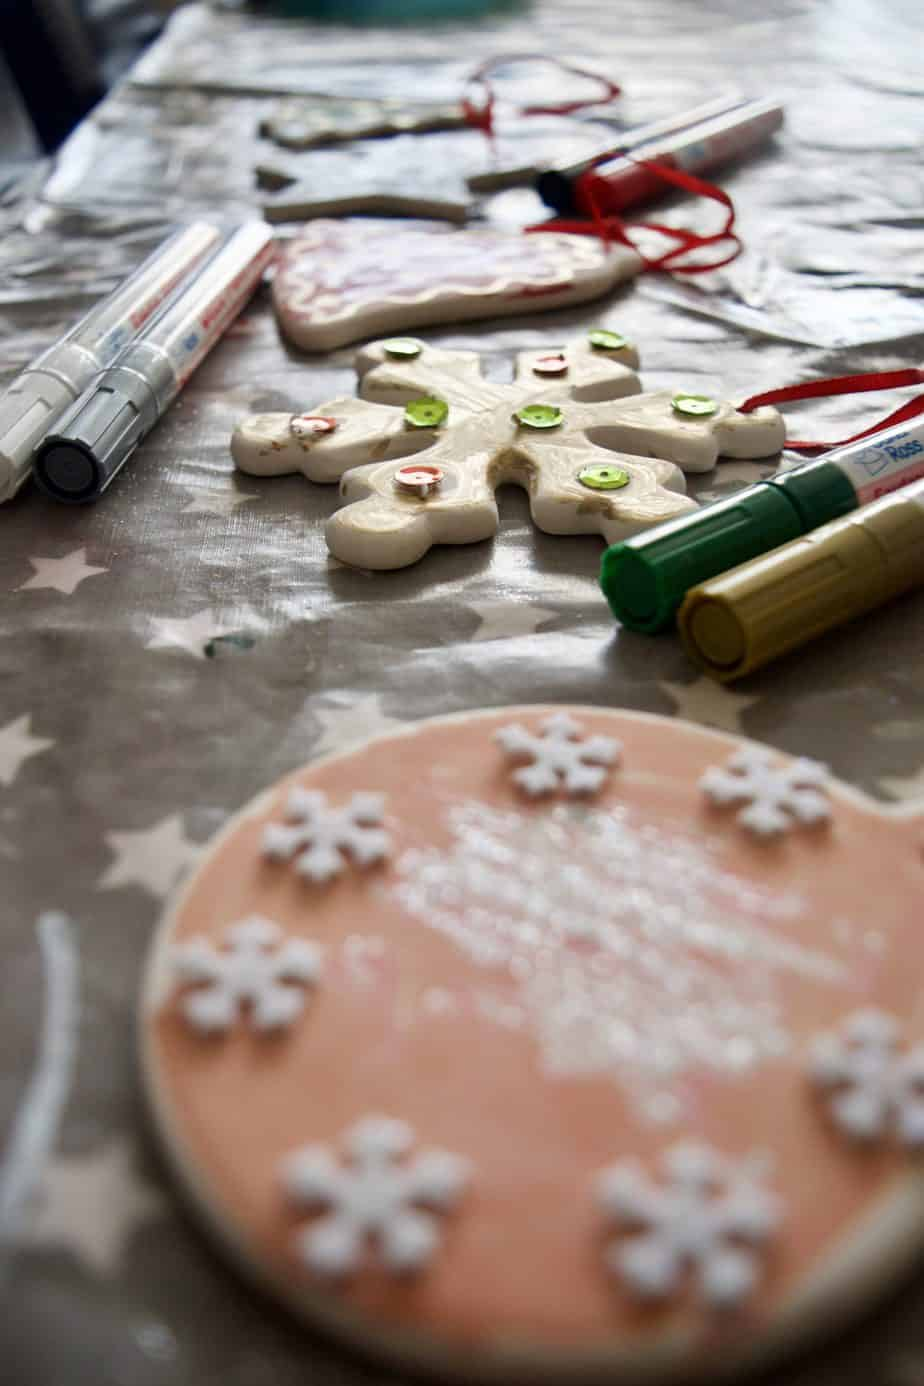 Our Christmas Tree decorations make out of ceramic from Baker Ross